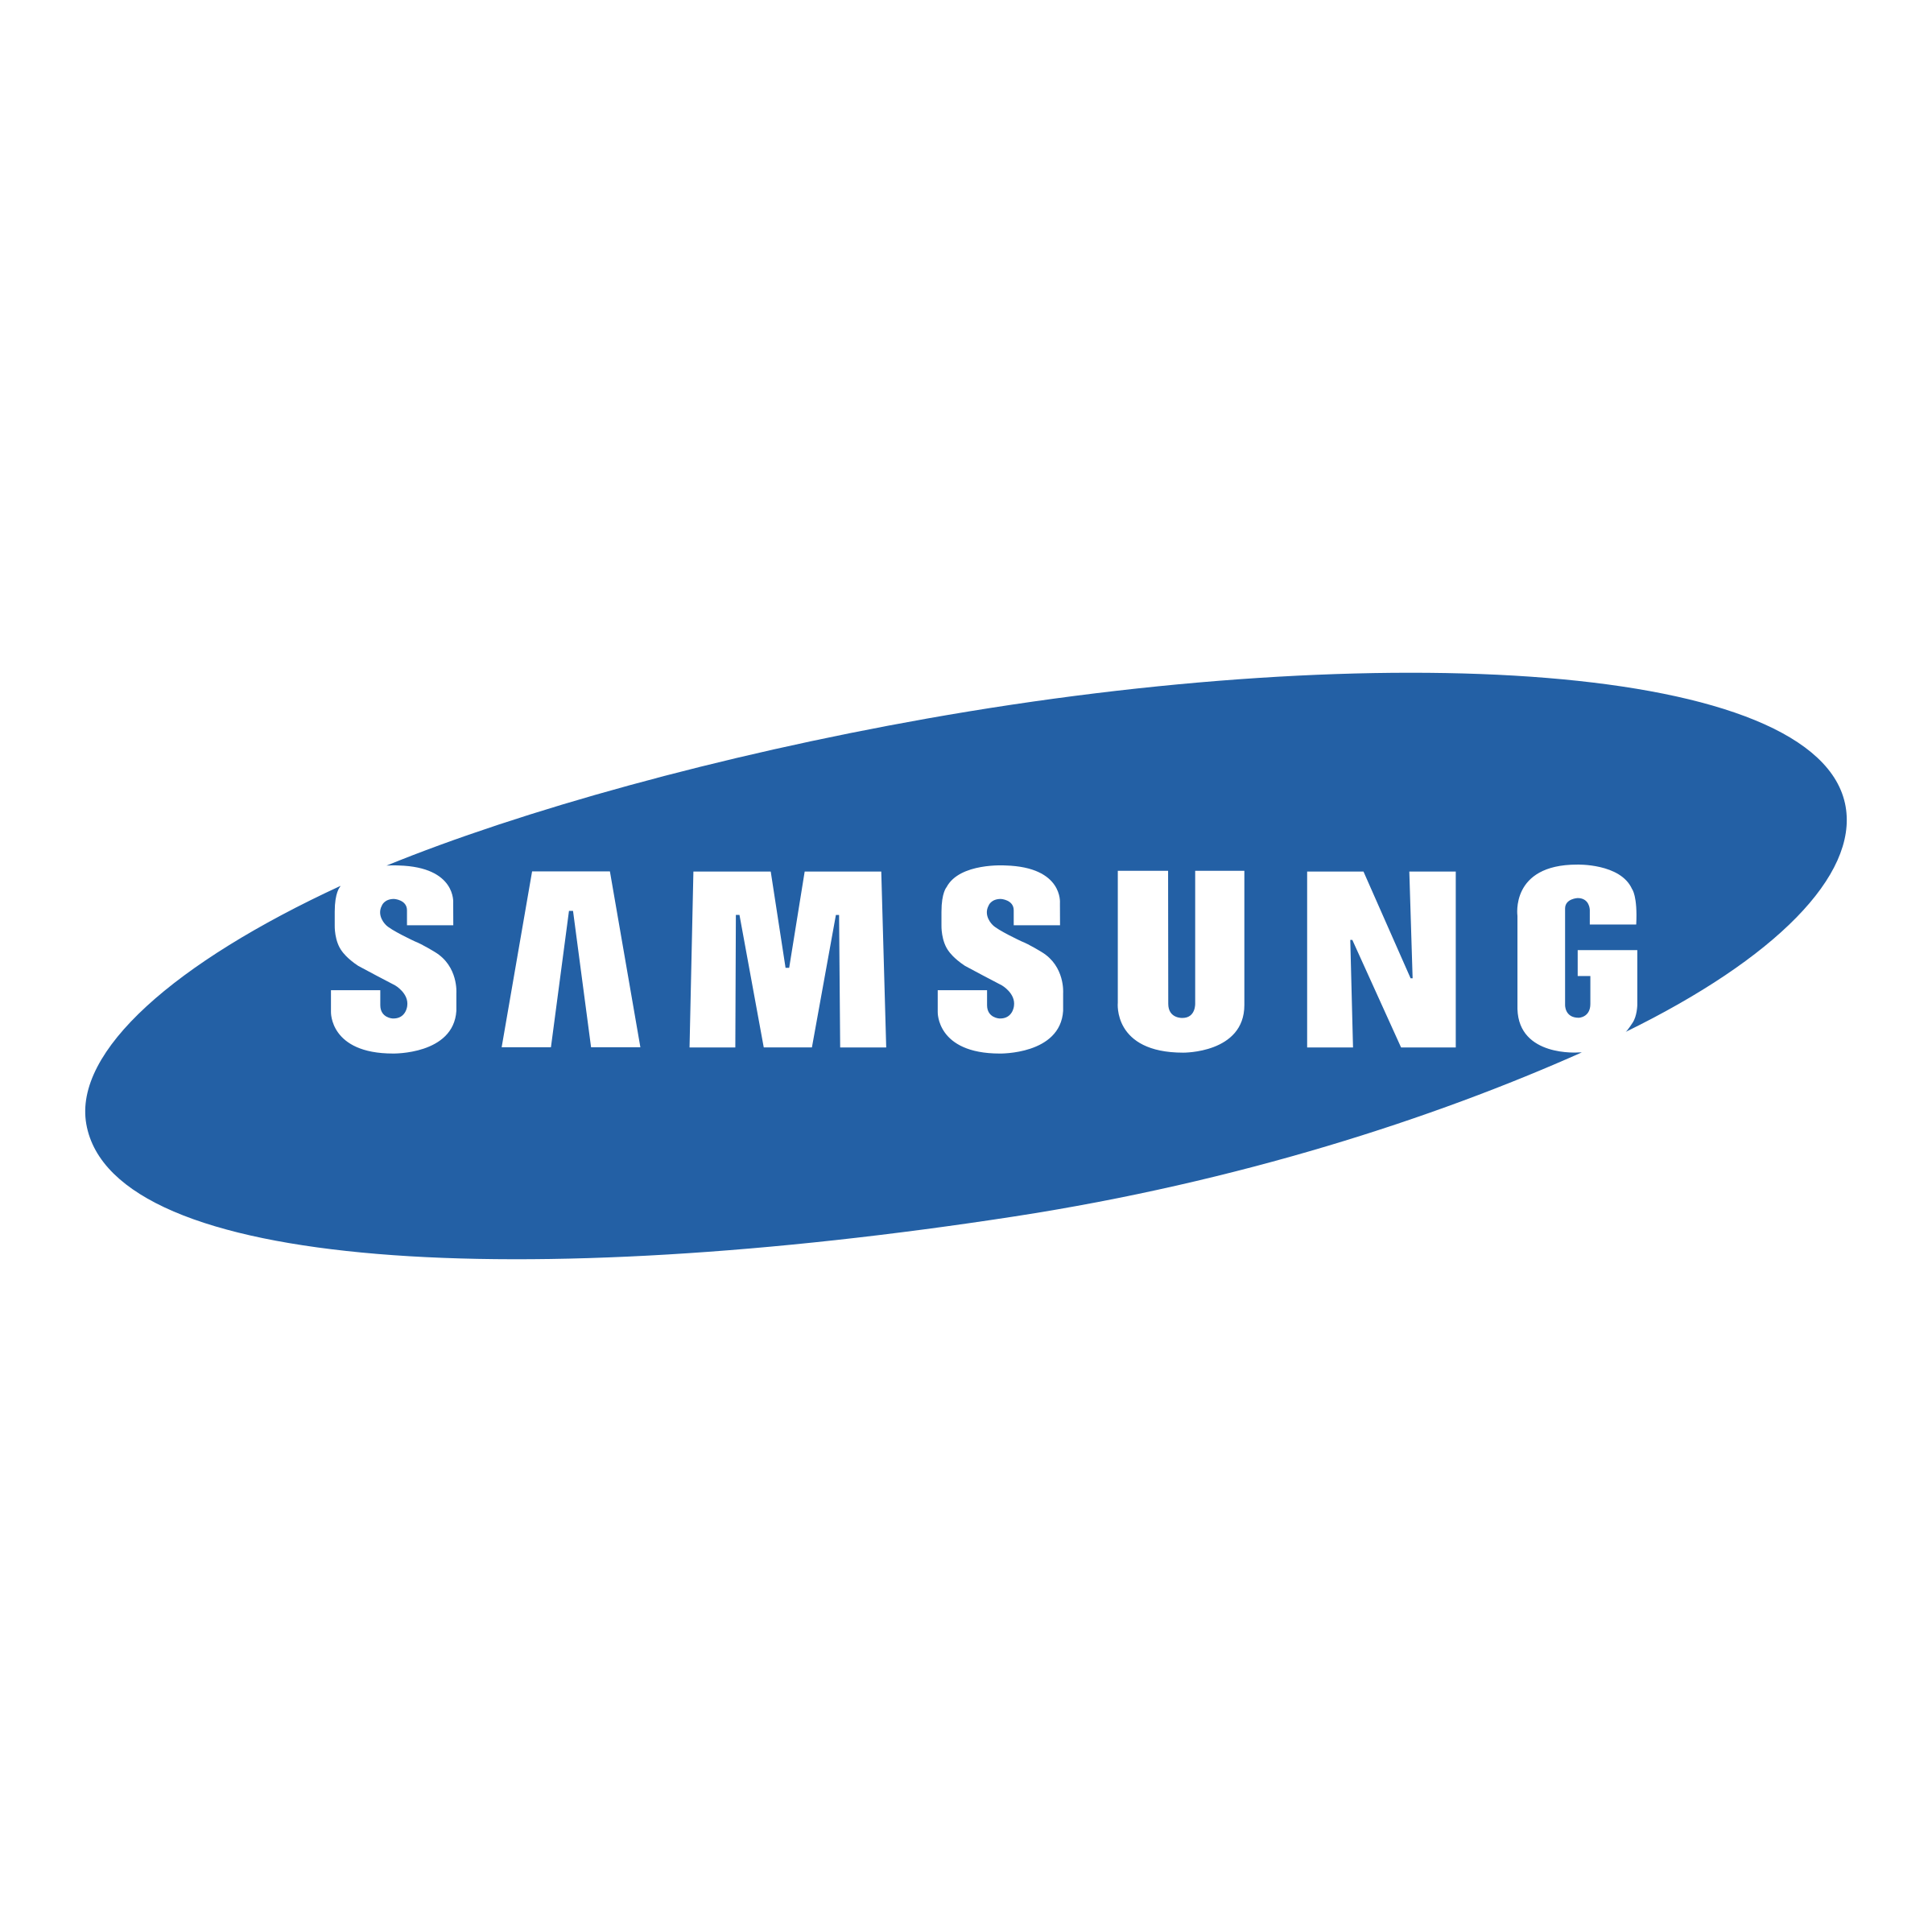 samsung logo png transparent svg vector freebie supply rh freebiesupply com samsung logistics samsung lagos nigeria